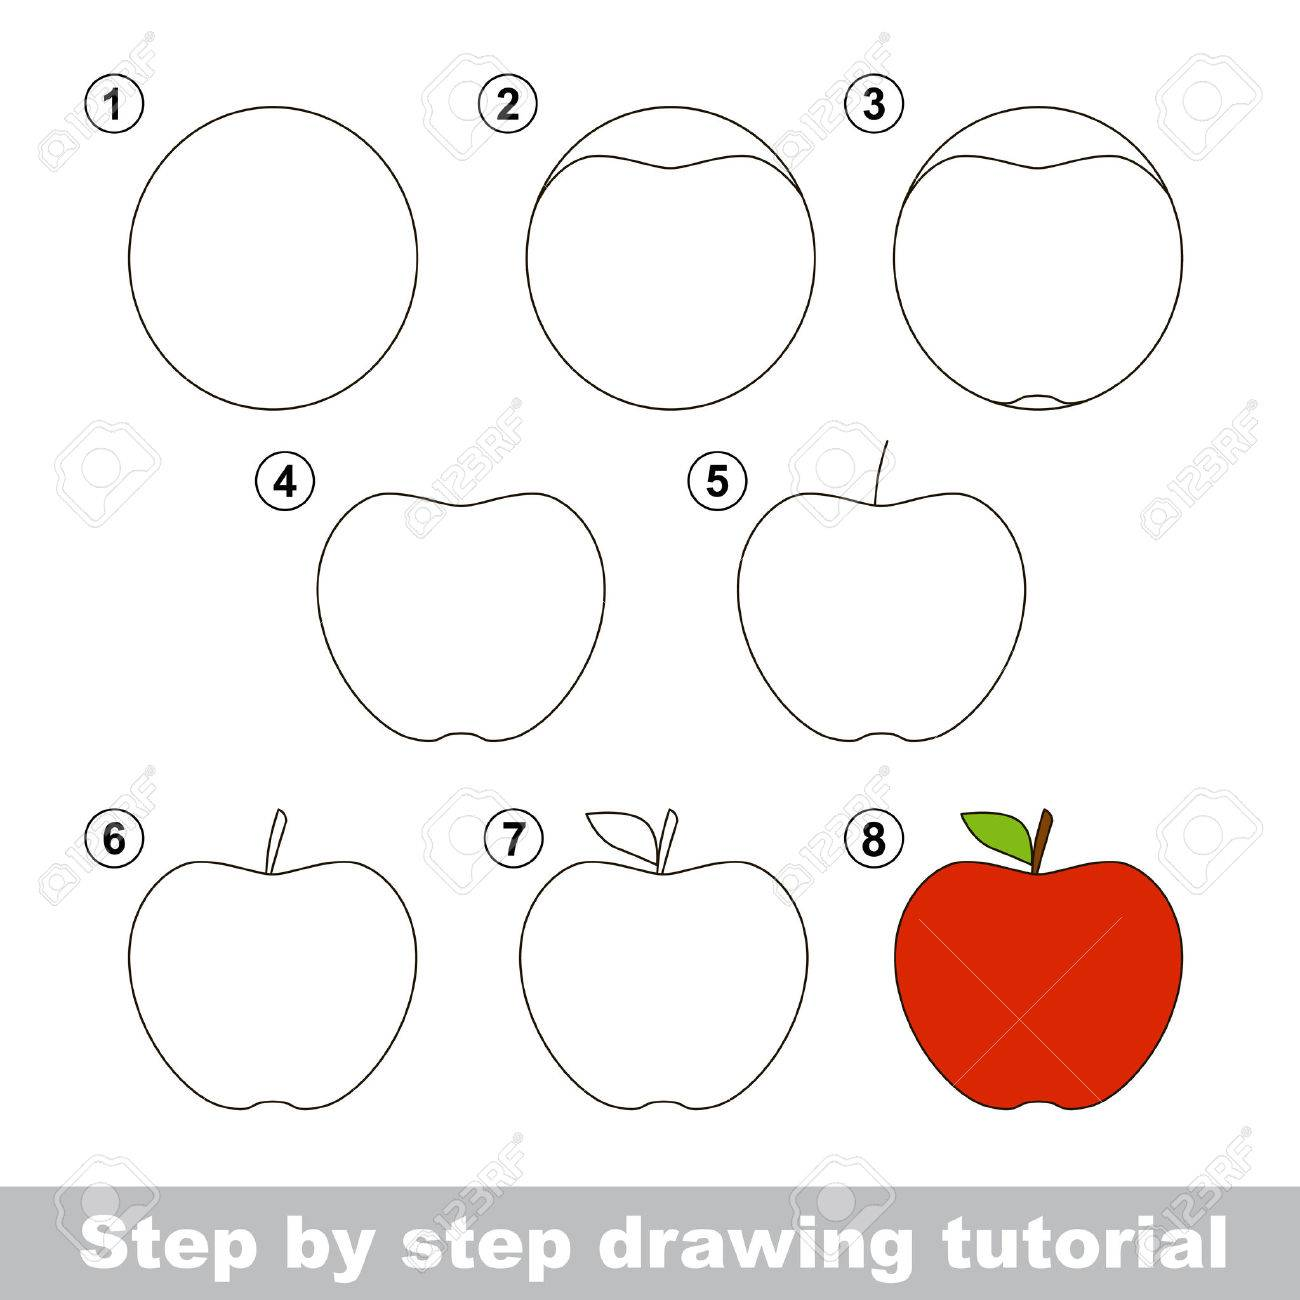 Step By Step Drawing Tutorial Visual Game For Kids How To Draw